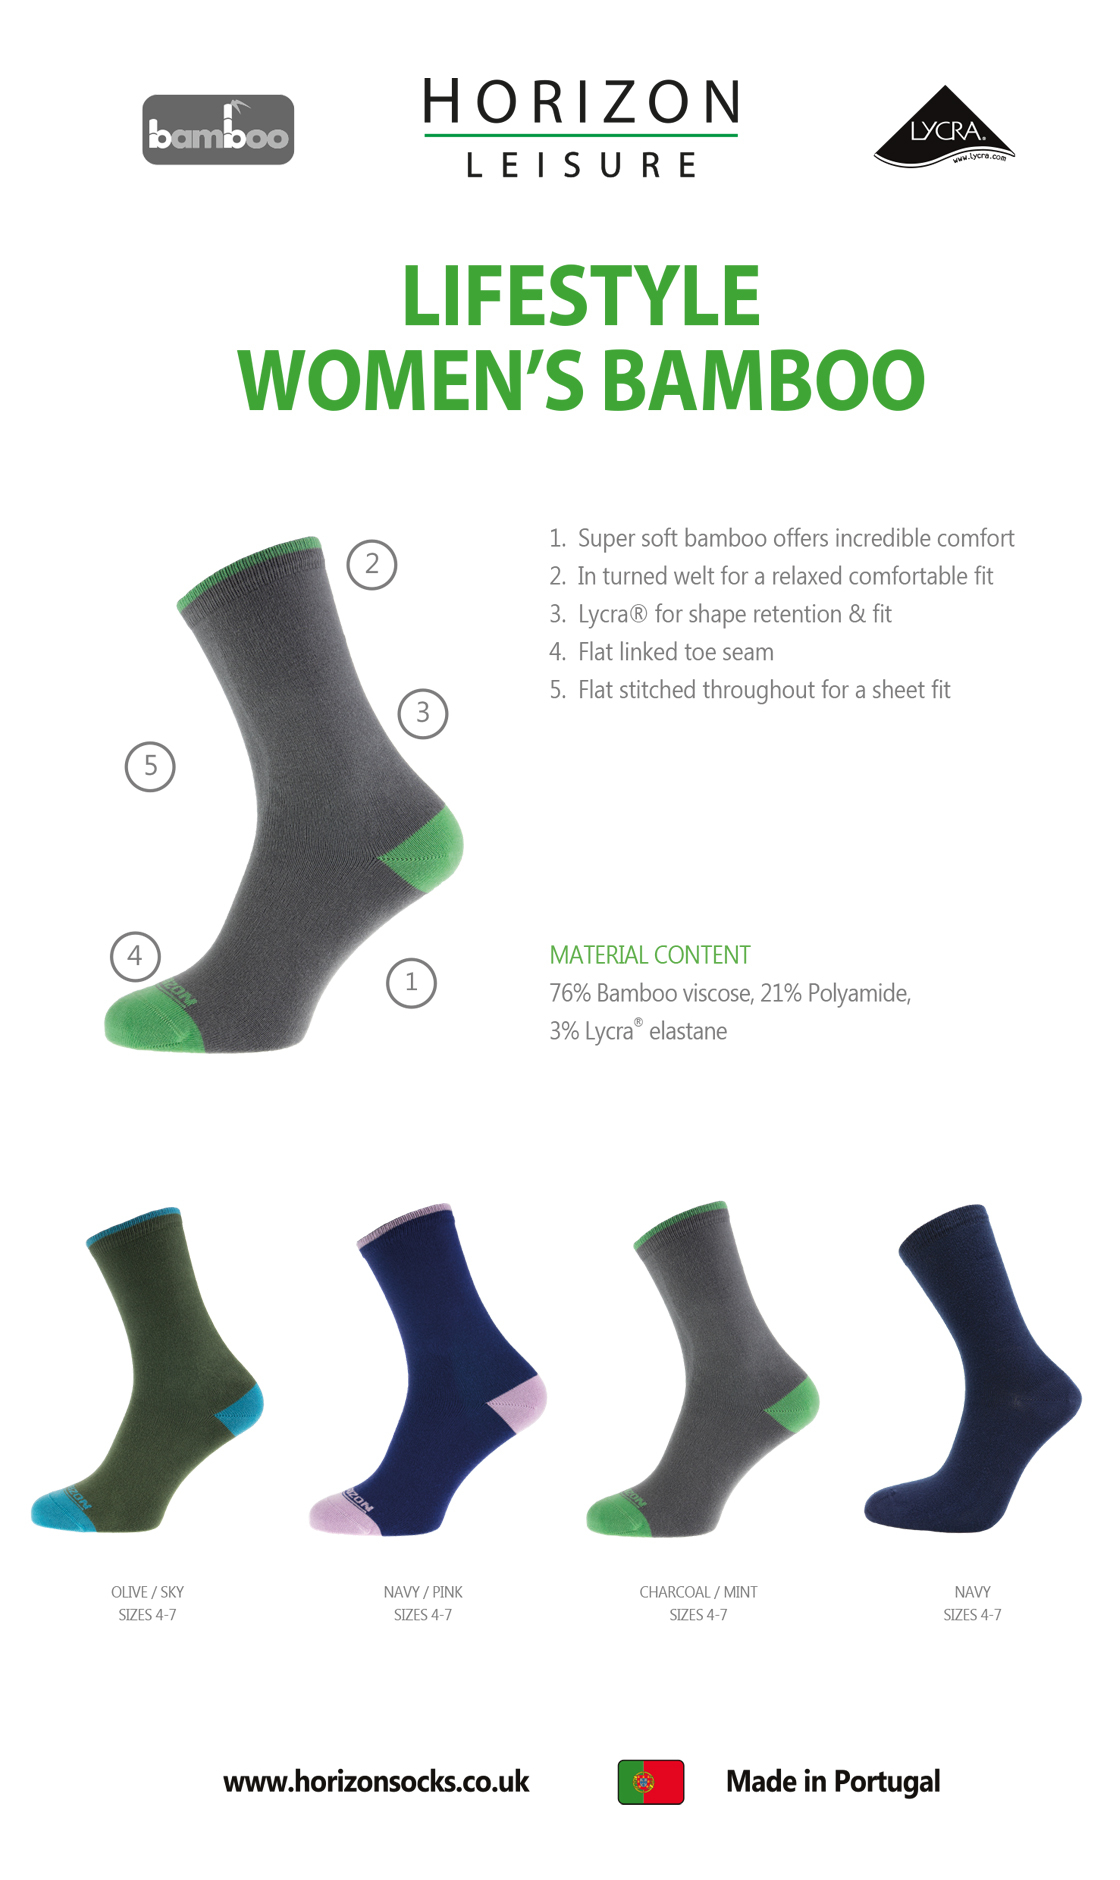 Leisure Lifestyle Bamboo Women's Plain Guide